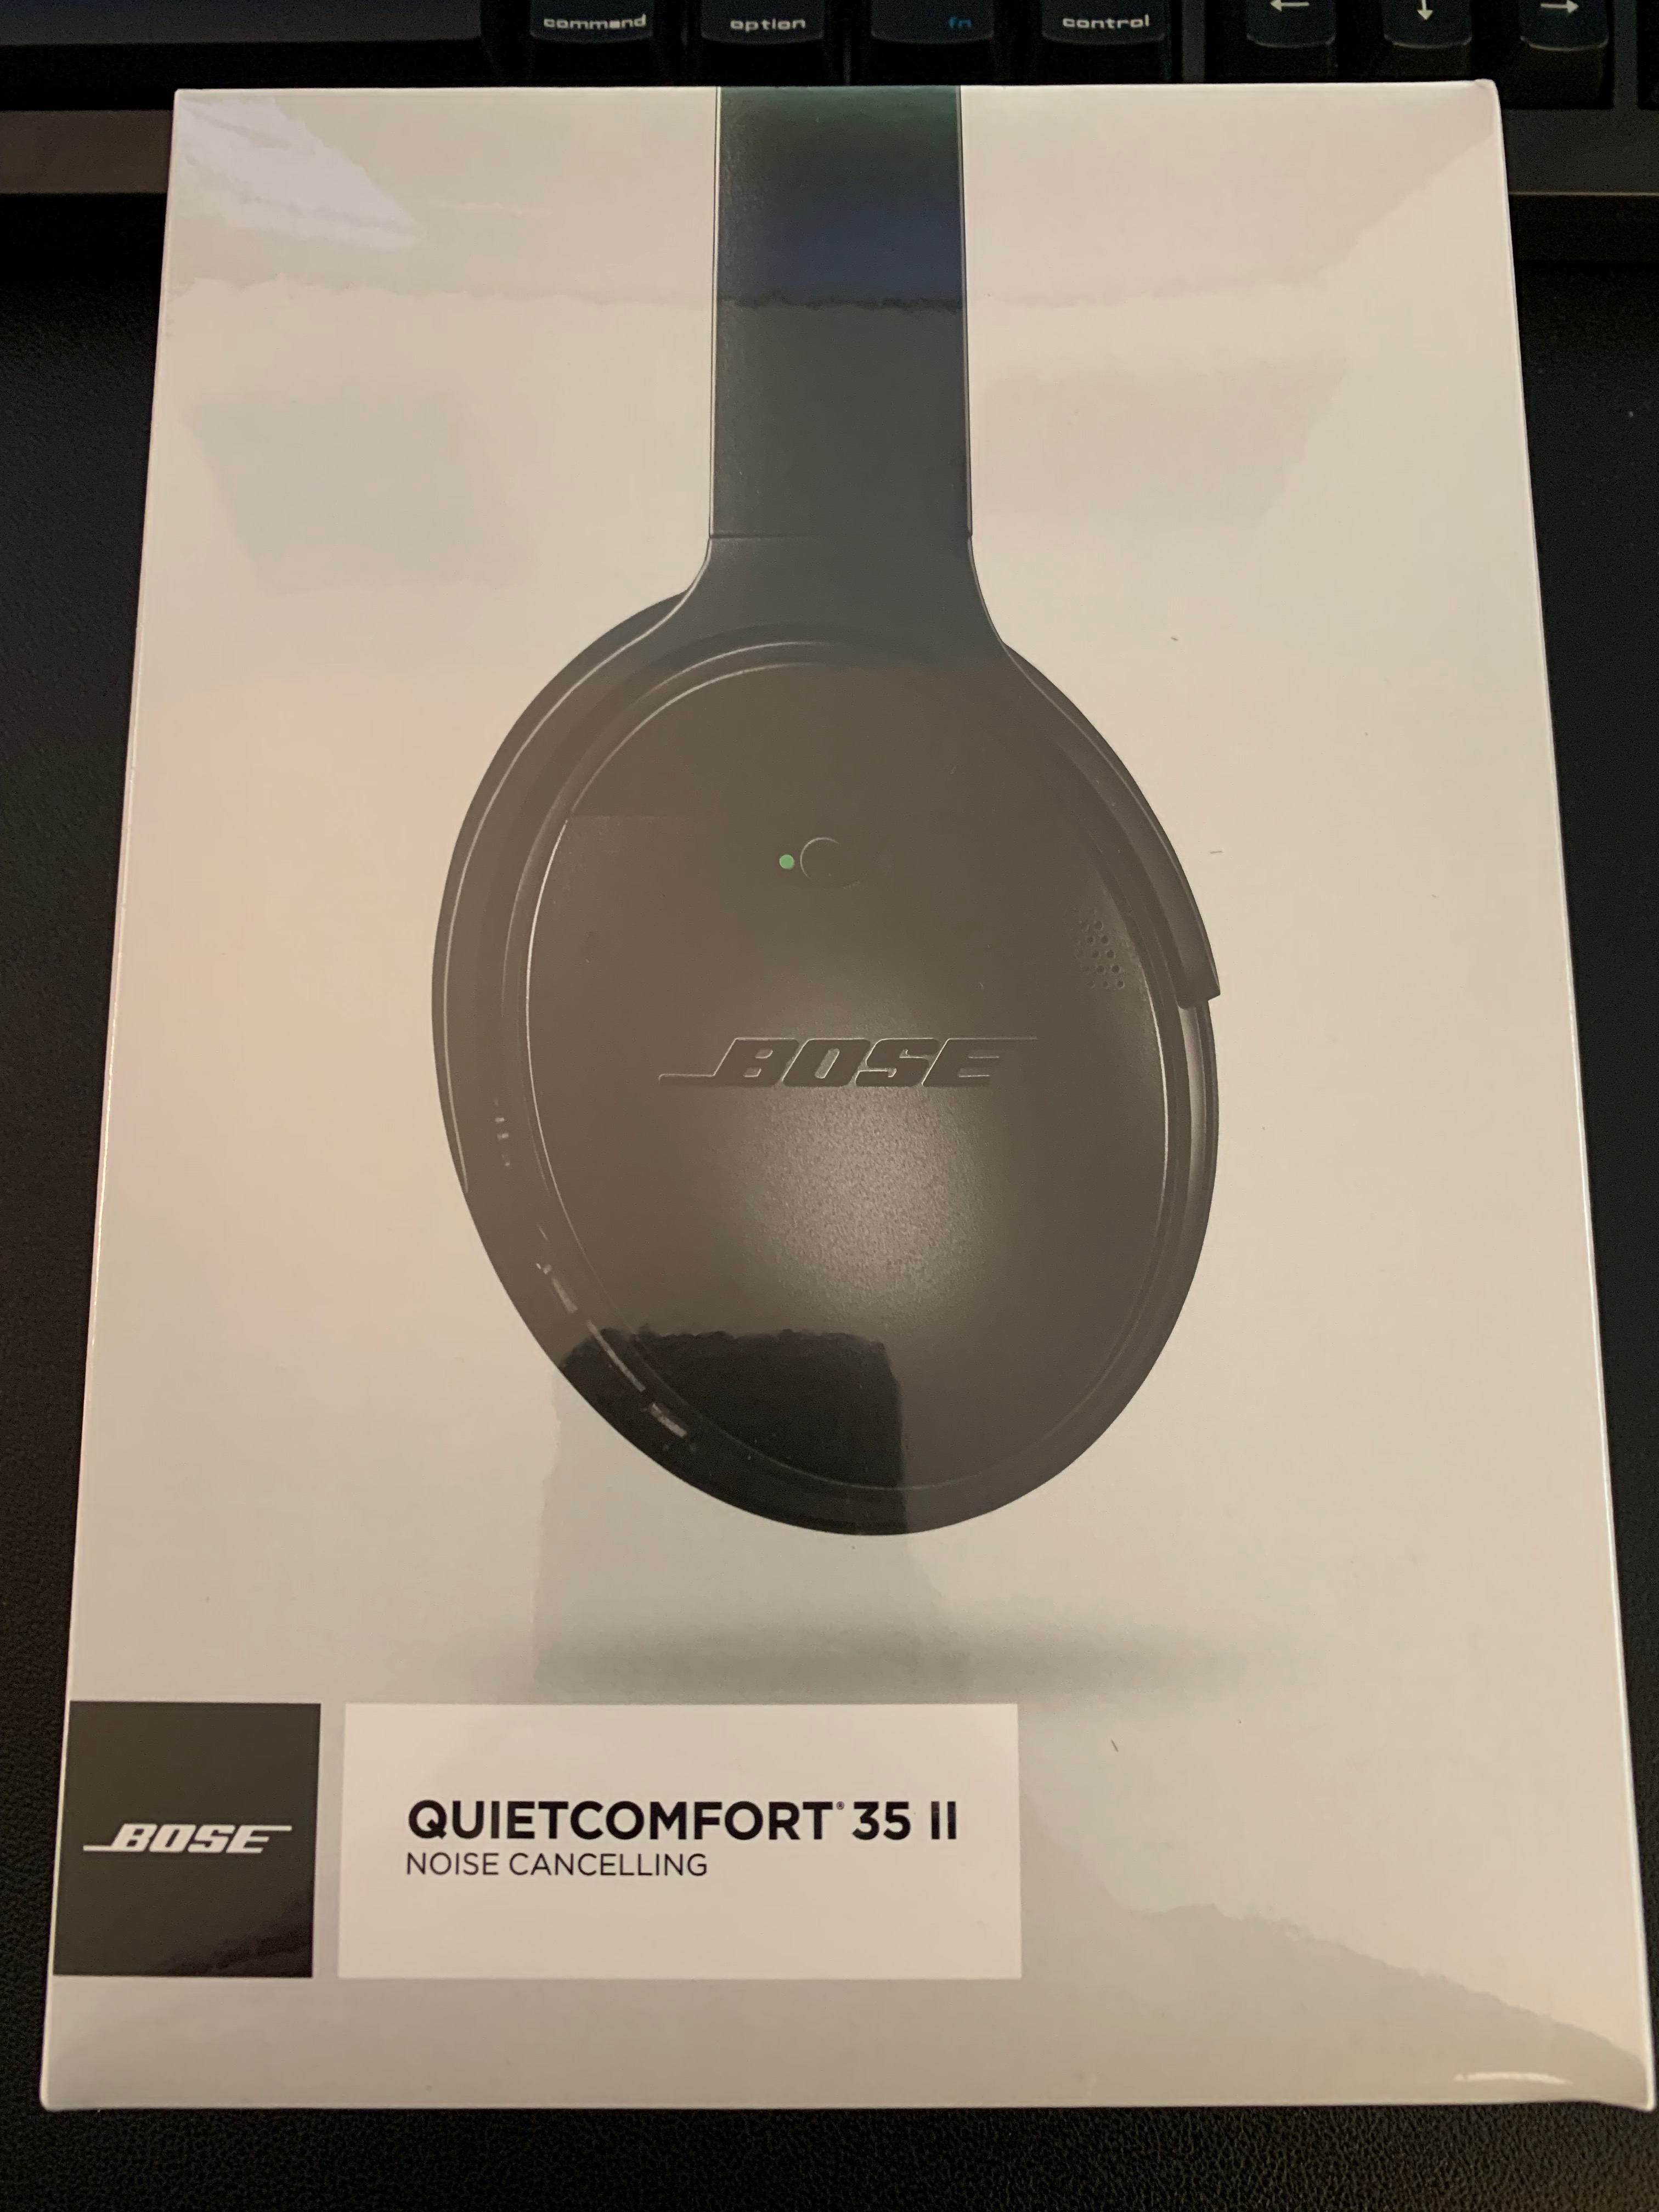 Unopened Box of Bose QC35 II